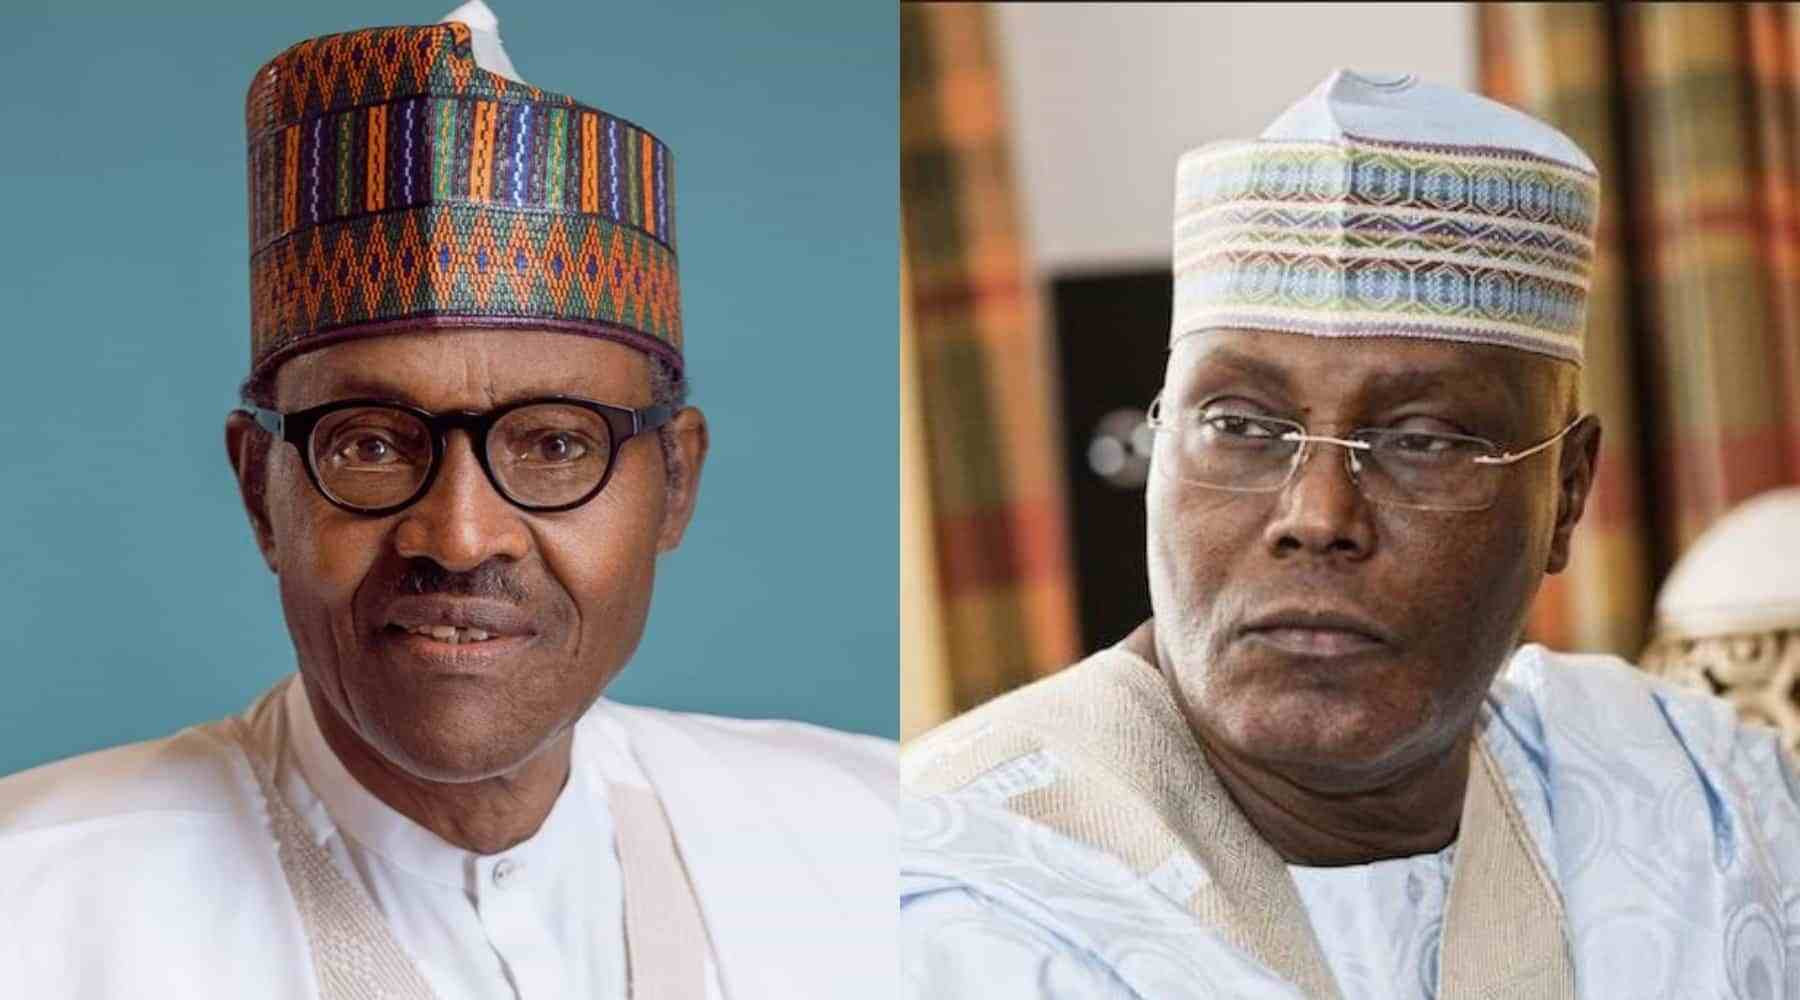 PDP, Atiku must move on — Buhari reacts to supreme court's affirmation of his victory